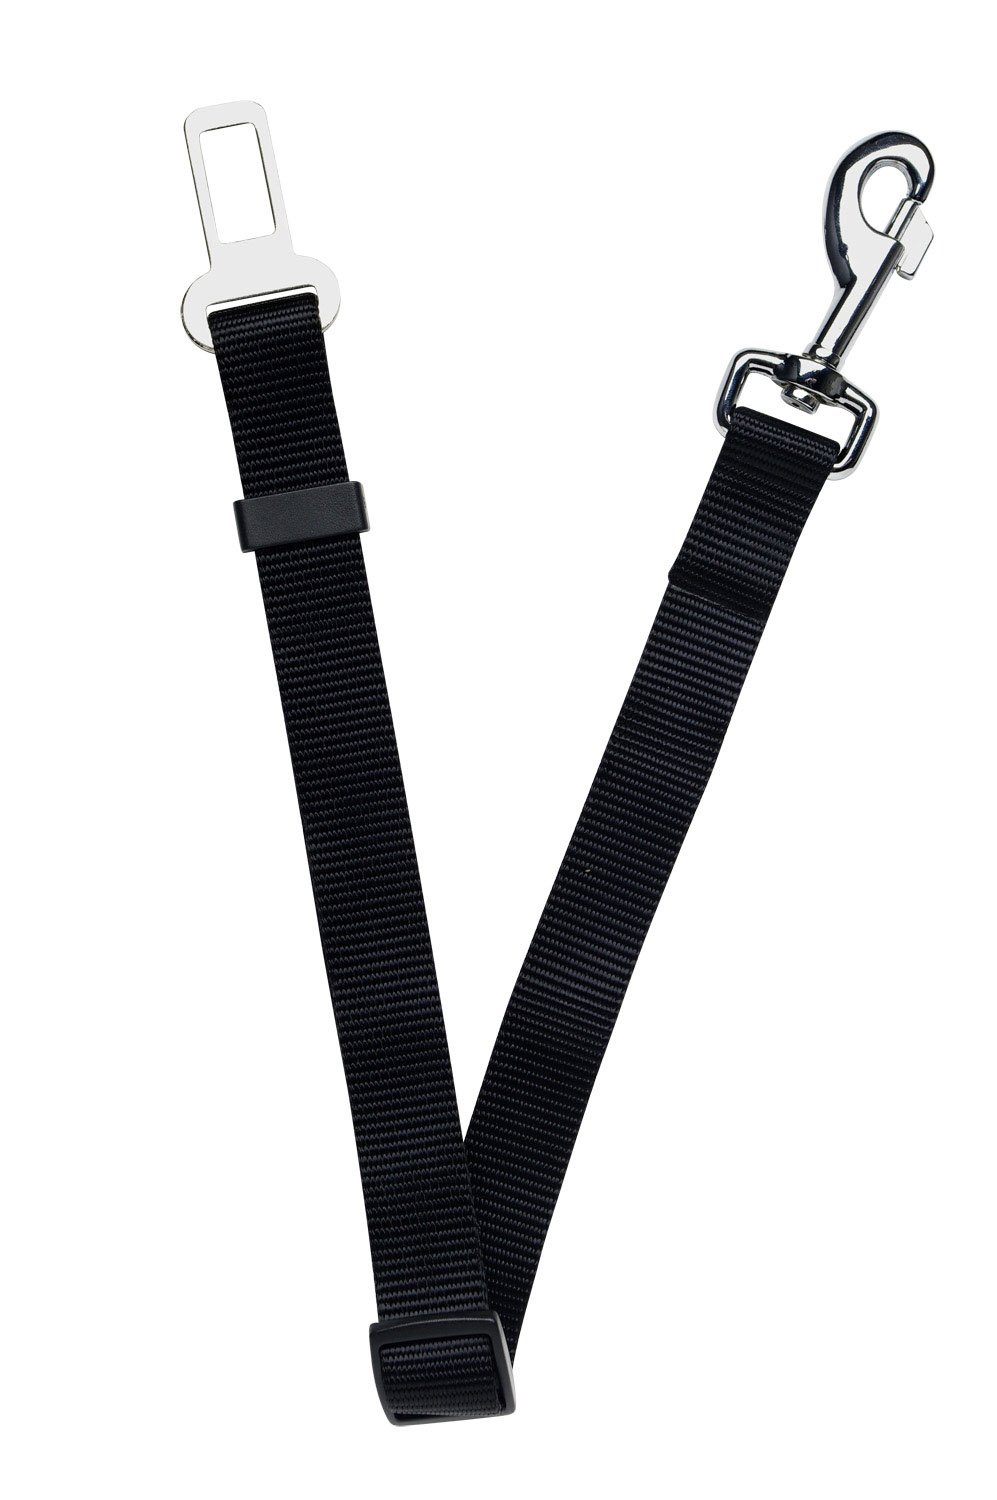 "Dogit Car Safety Belt Universal Attachment, Black 25mm x 55-87cm (1"" x 21.6"" - 34.3"")"